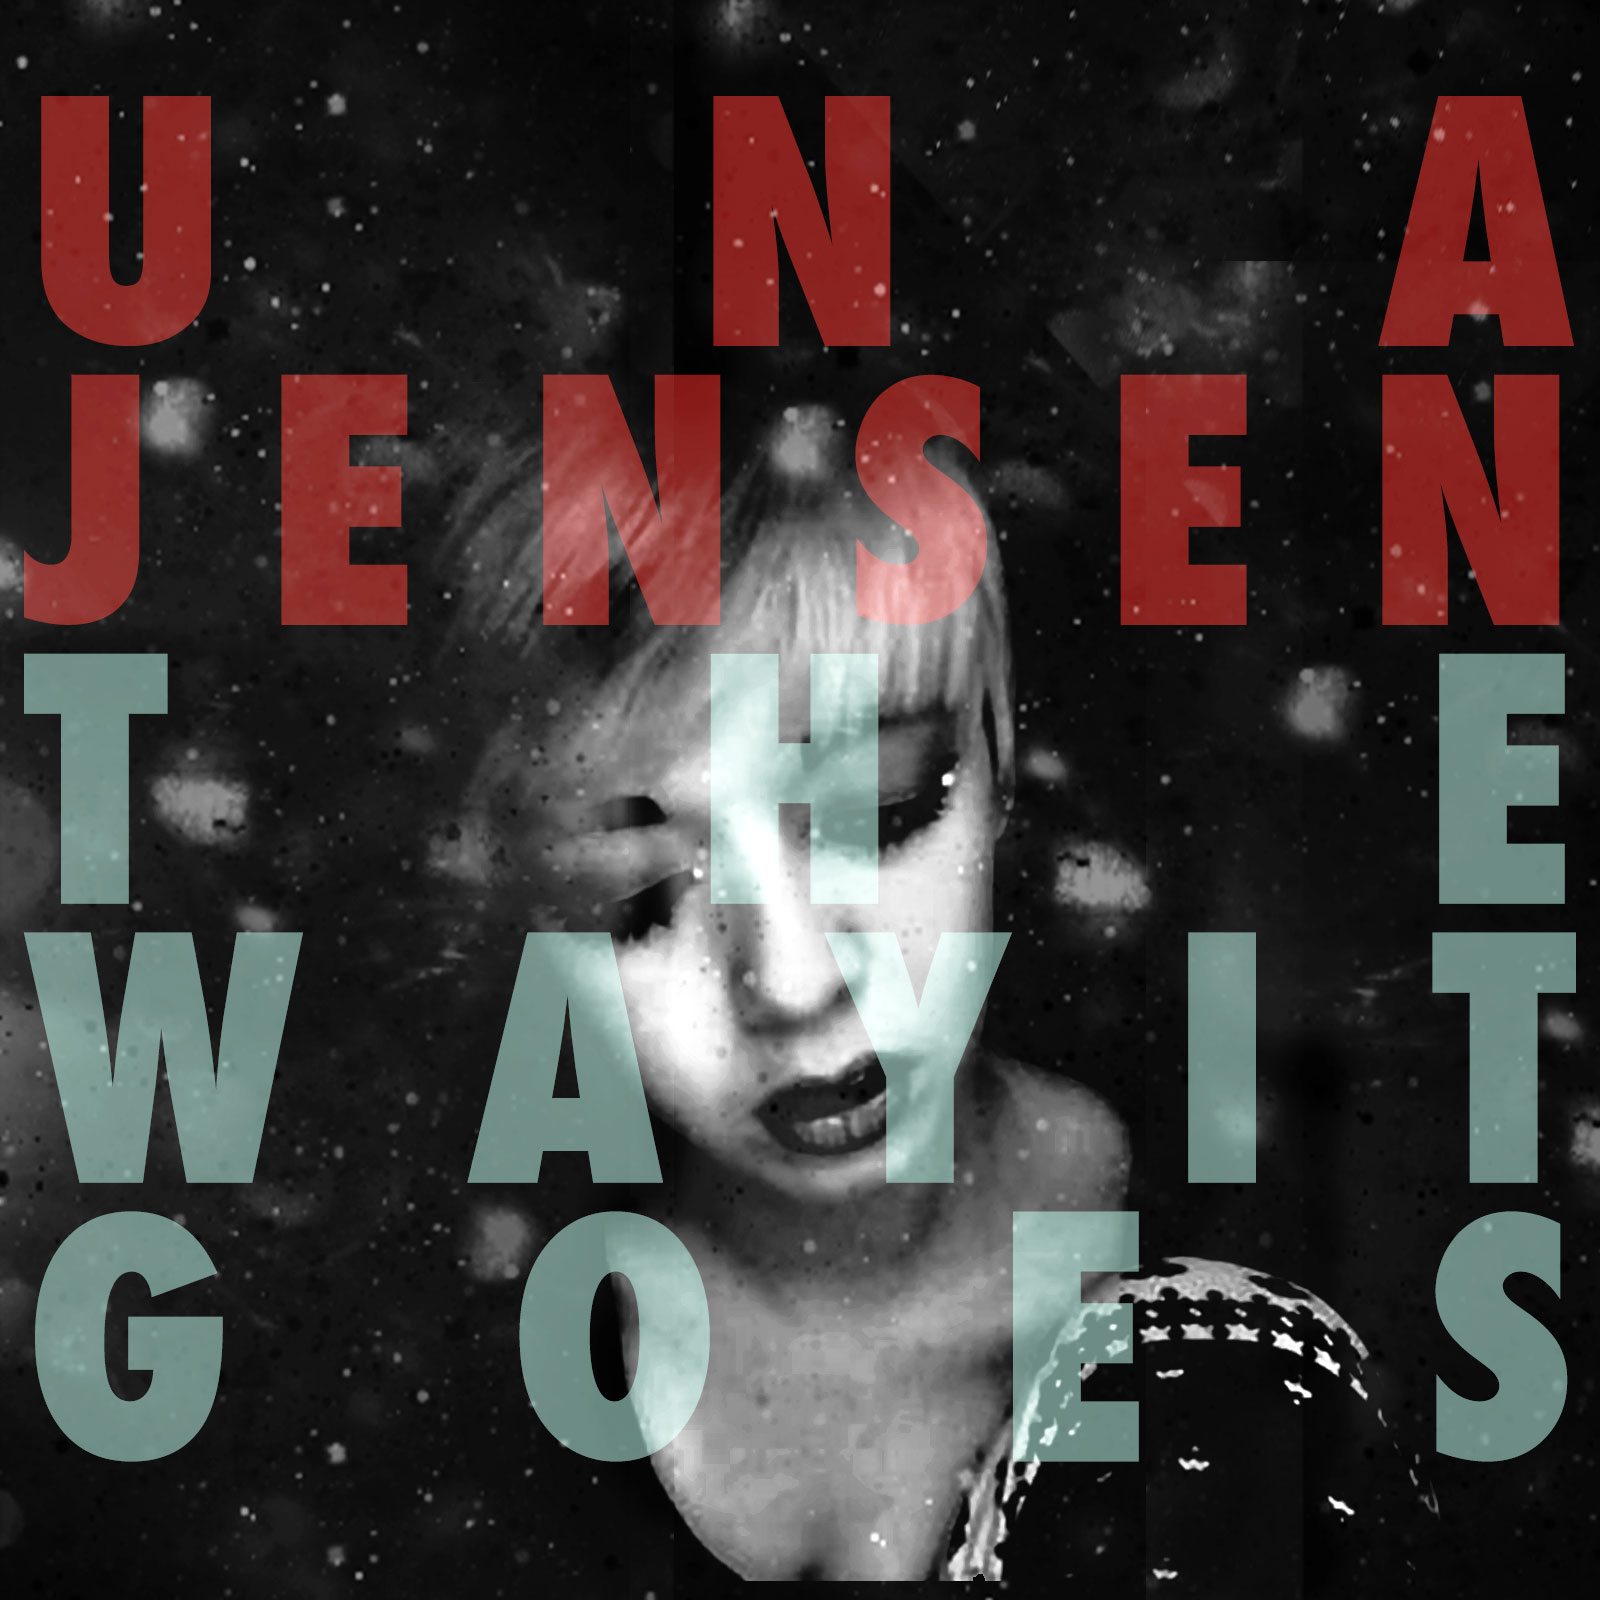 New music from UNA JENSEN coming soon!